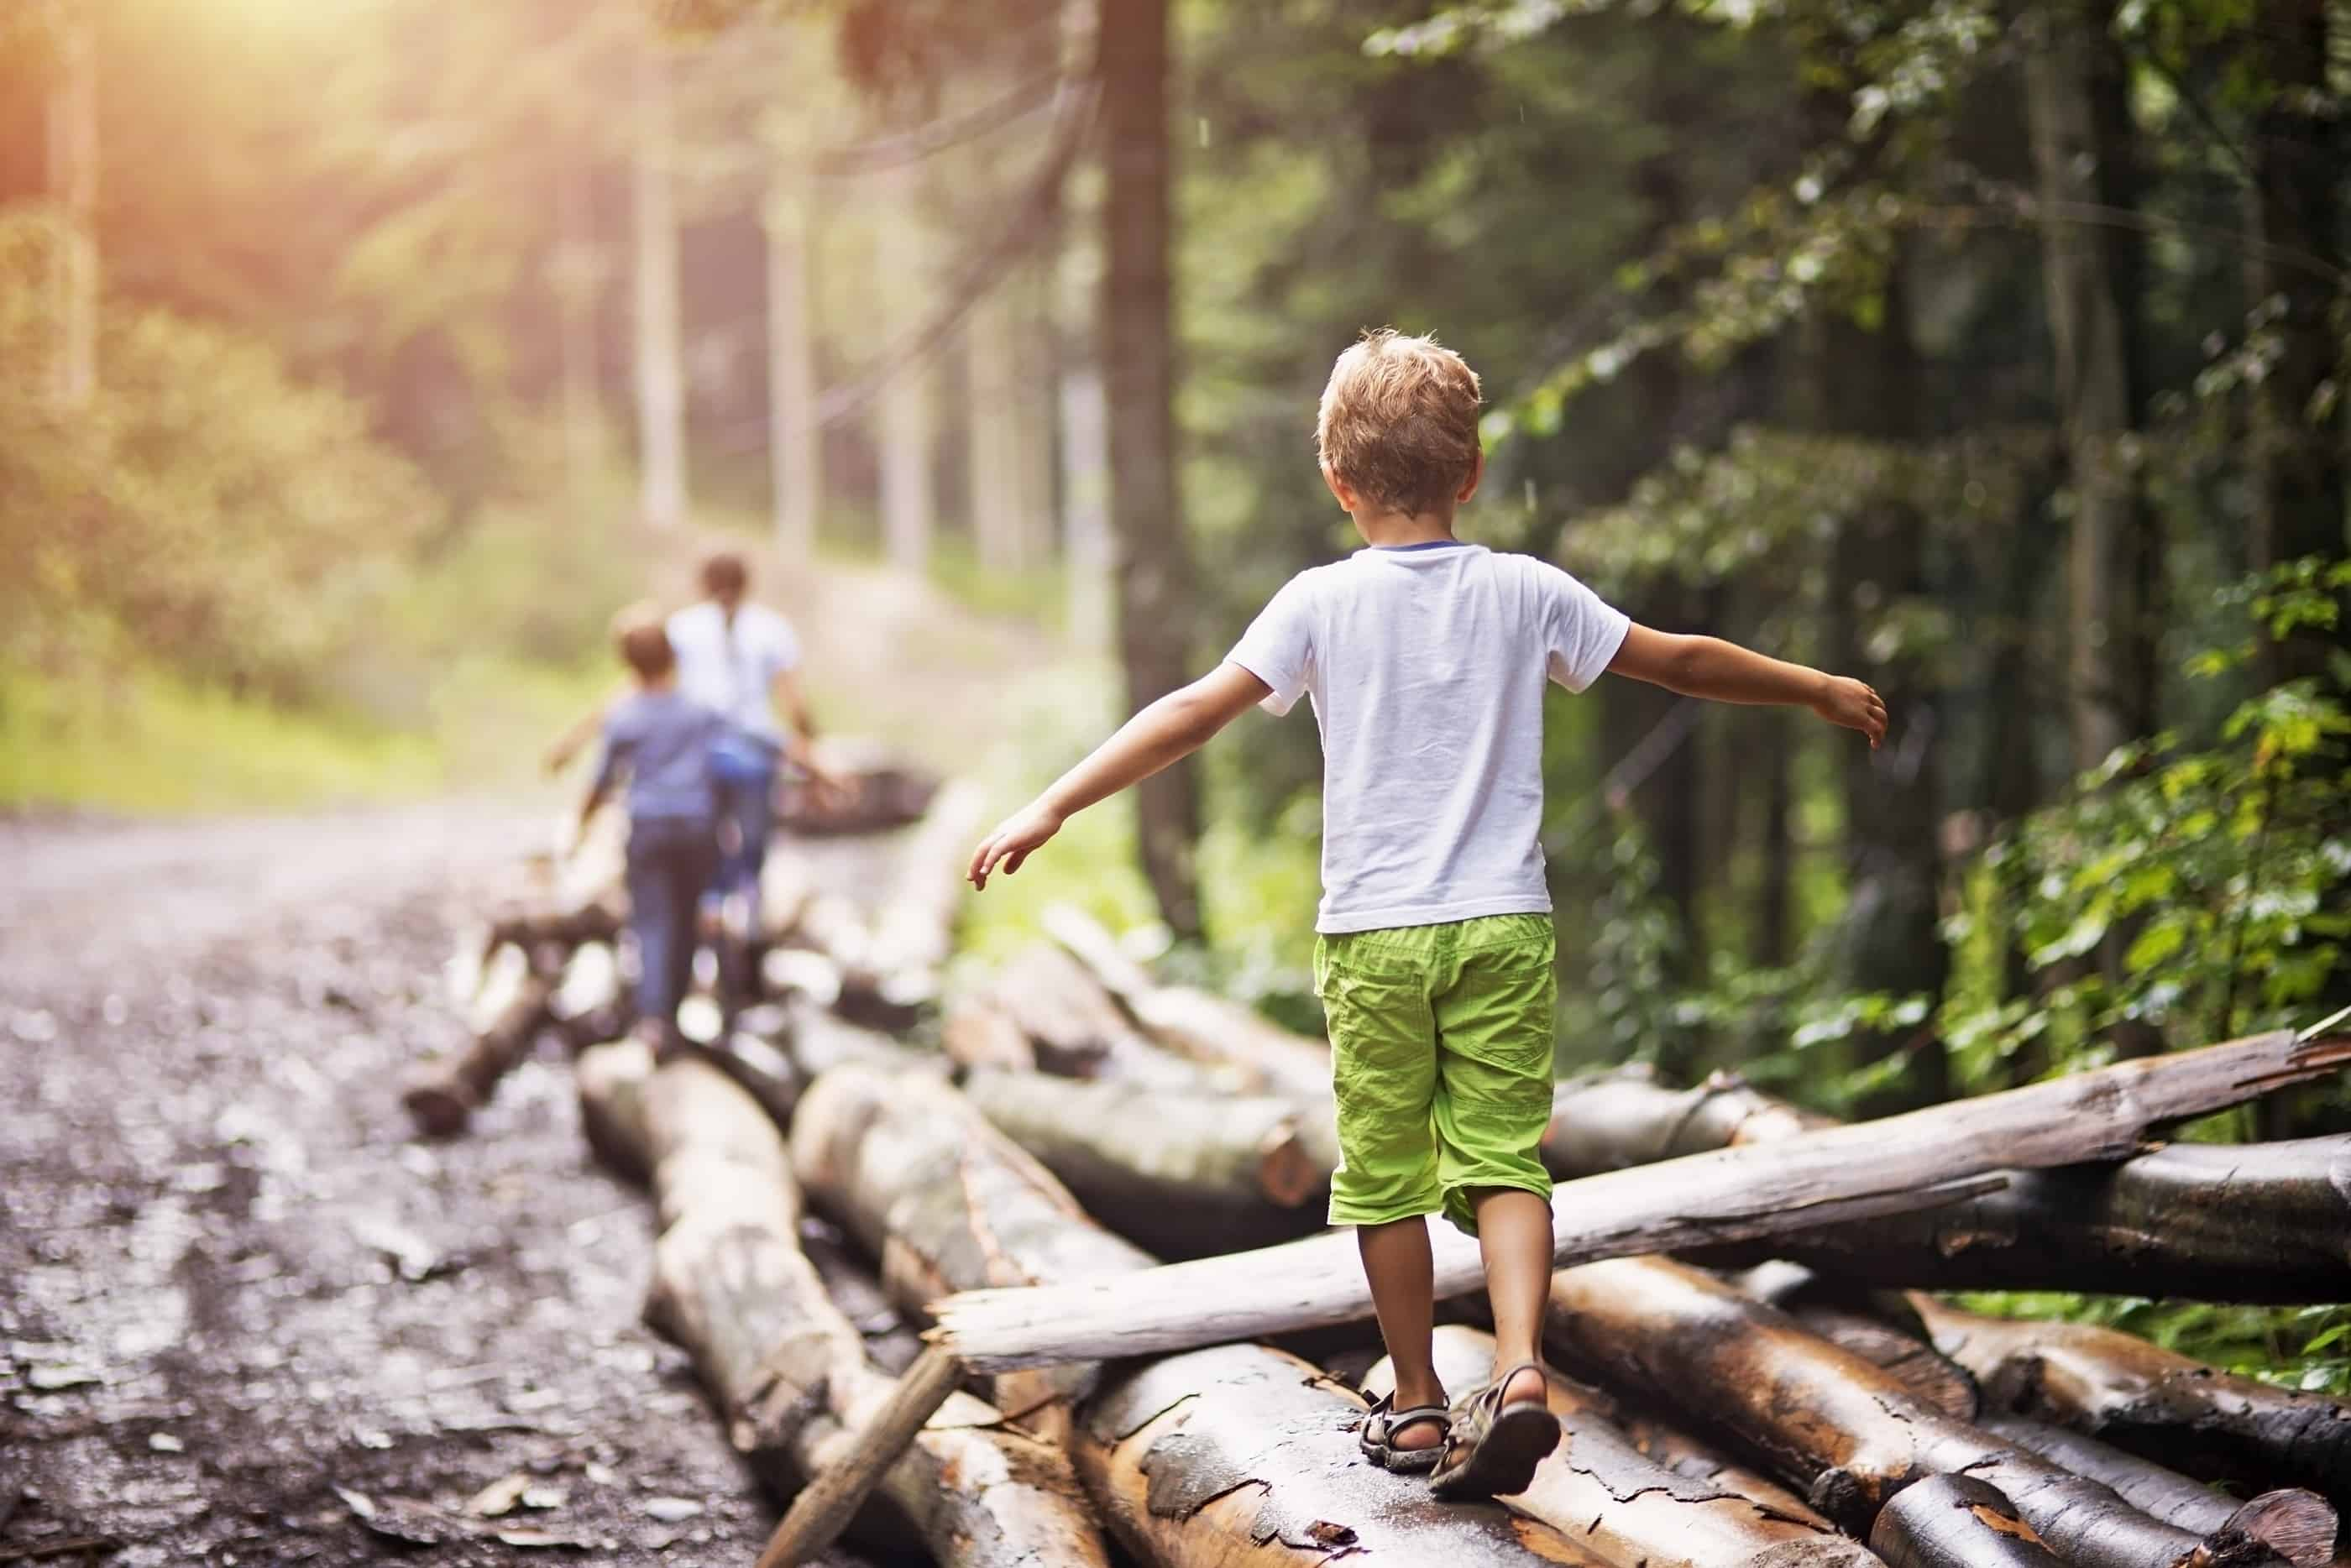 Little hikers walking on a tree trunks in a forest.